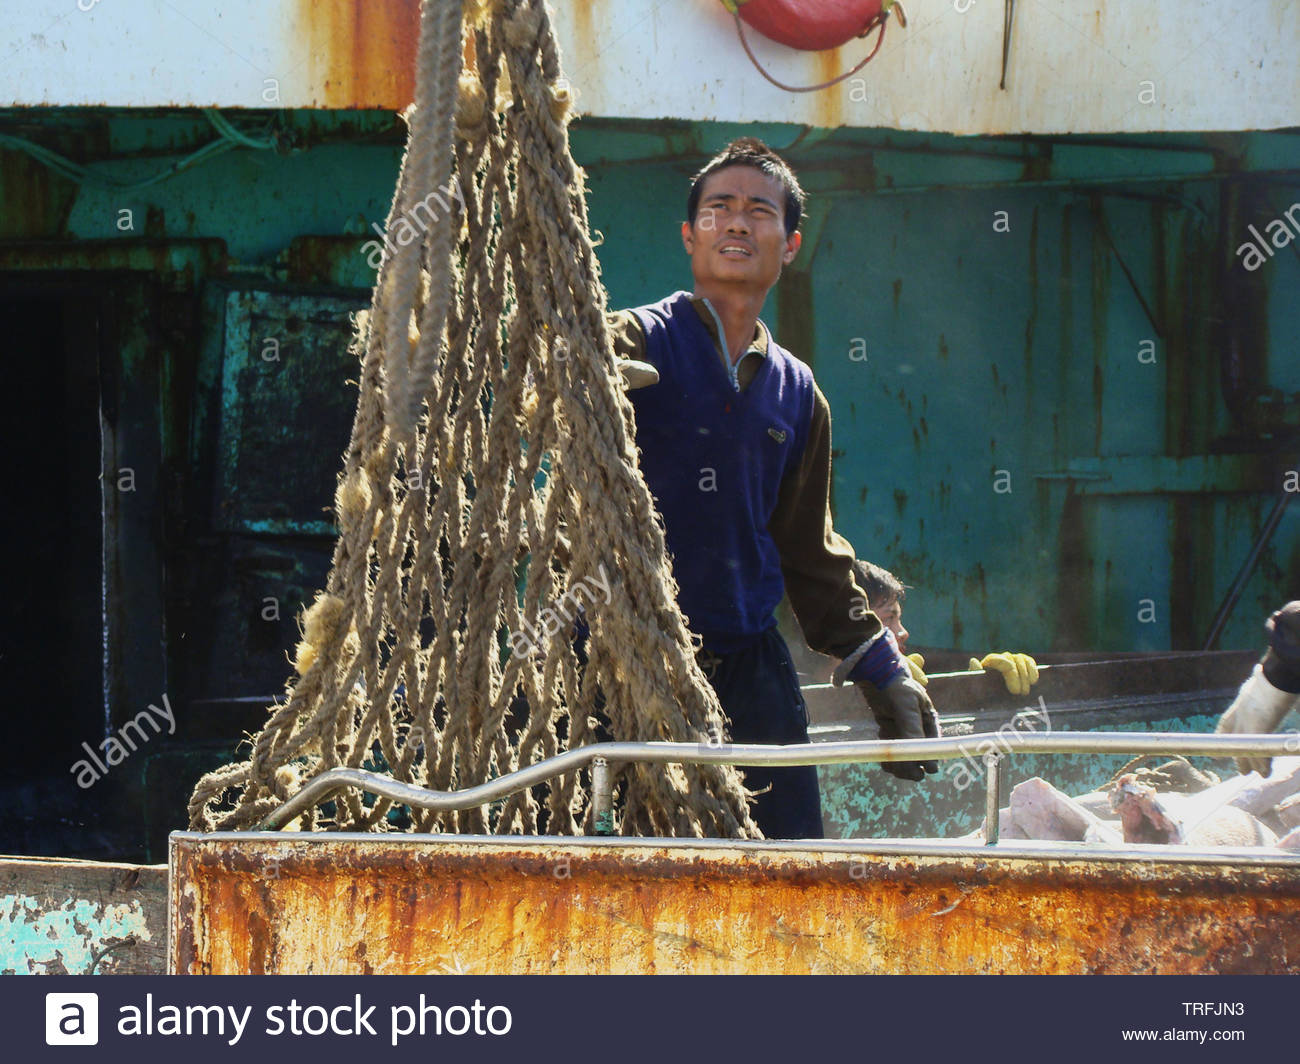 The crew of an Asian longliner prepares the last batches of frozen fish to be transshipped onto the Taiwanese-flagged mothership moored by her side. - Stock Image